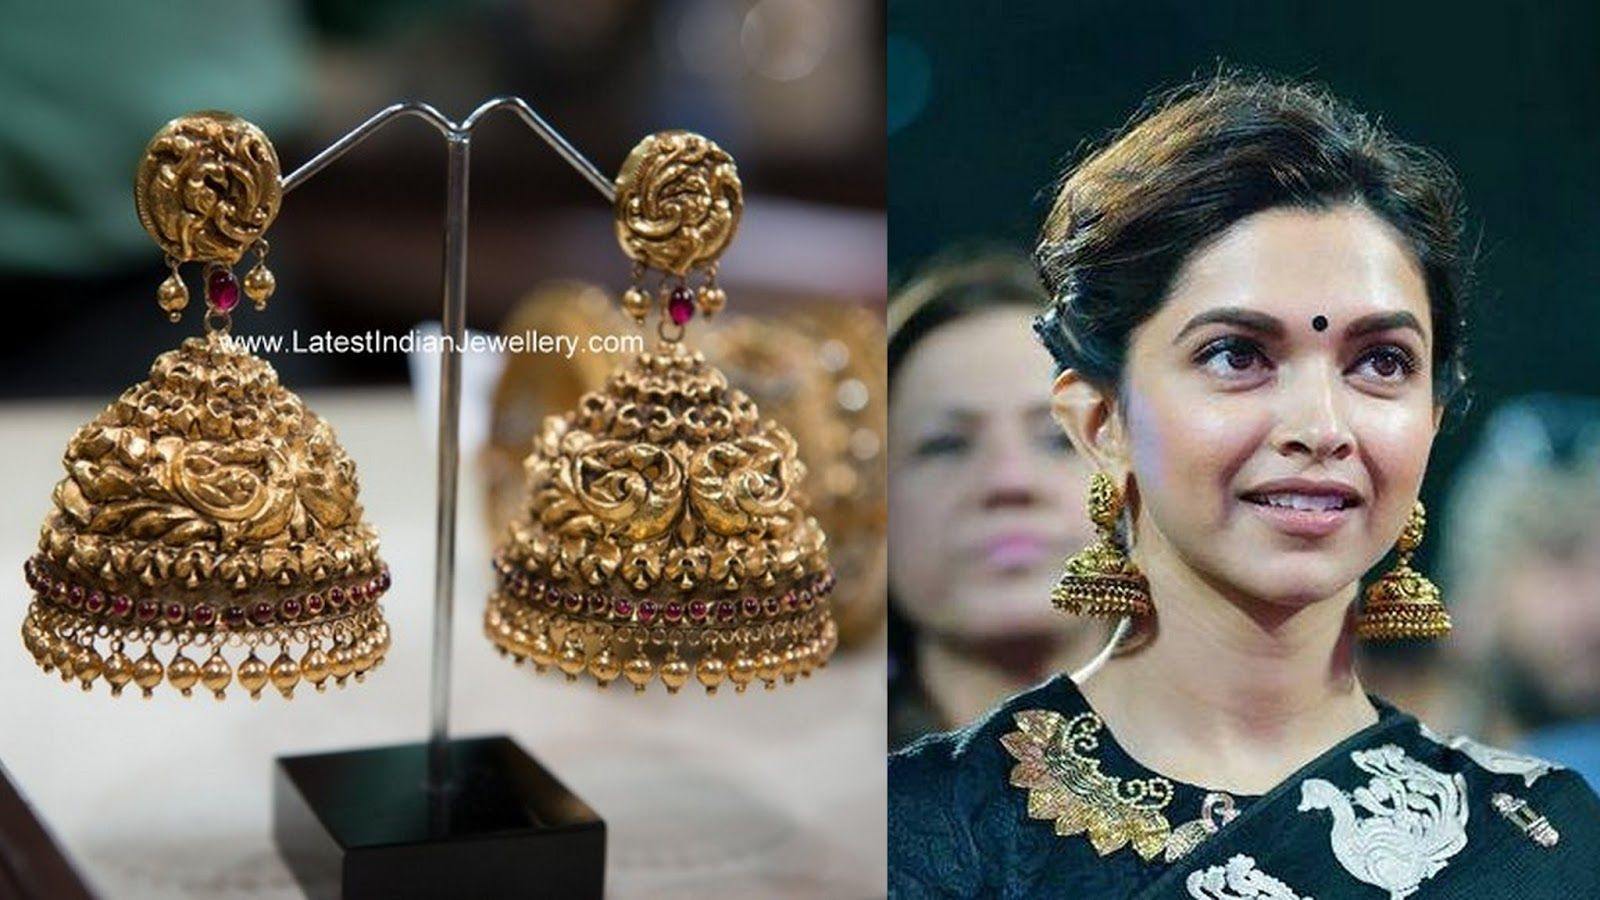 35fdc1fd55eb2 Deepika Padukone Gold Jhumkas | Jewels I | Gold jhumka earrings ...